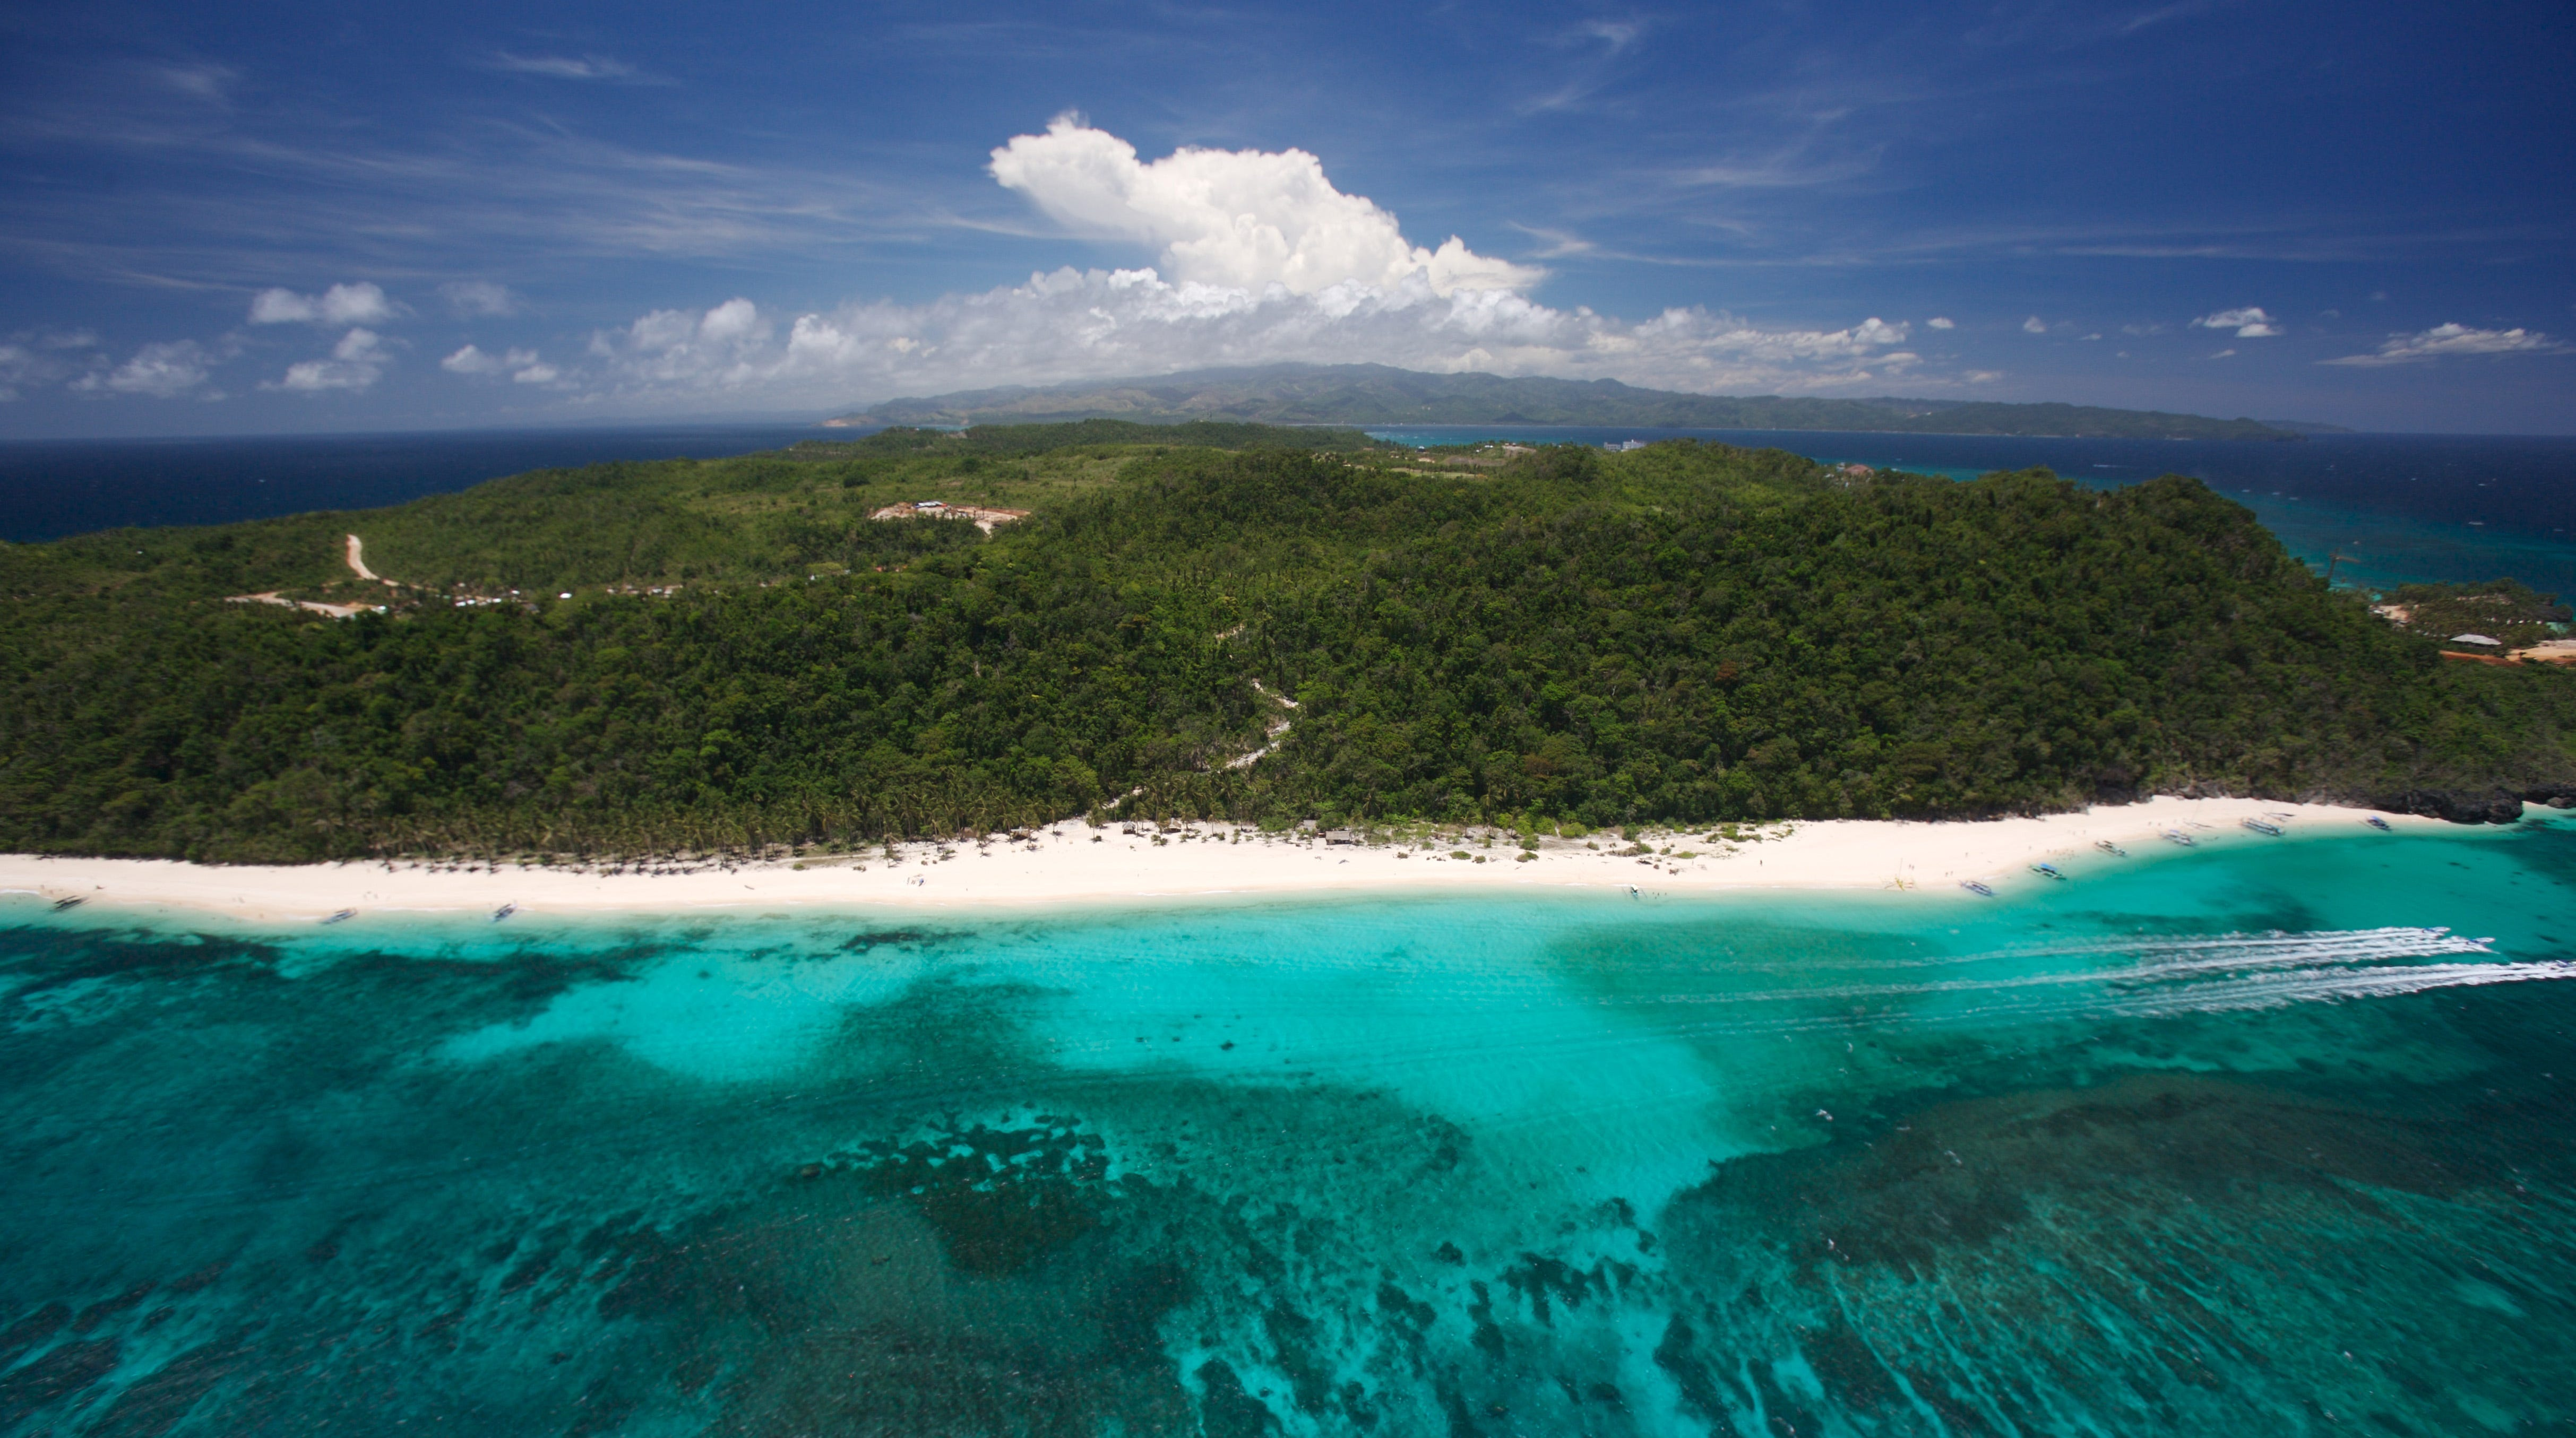 Blue skies and turquoise water frame Boracay, an island in the Philippines.